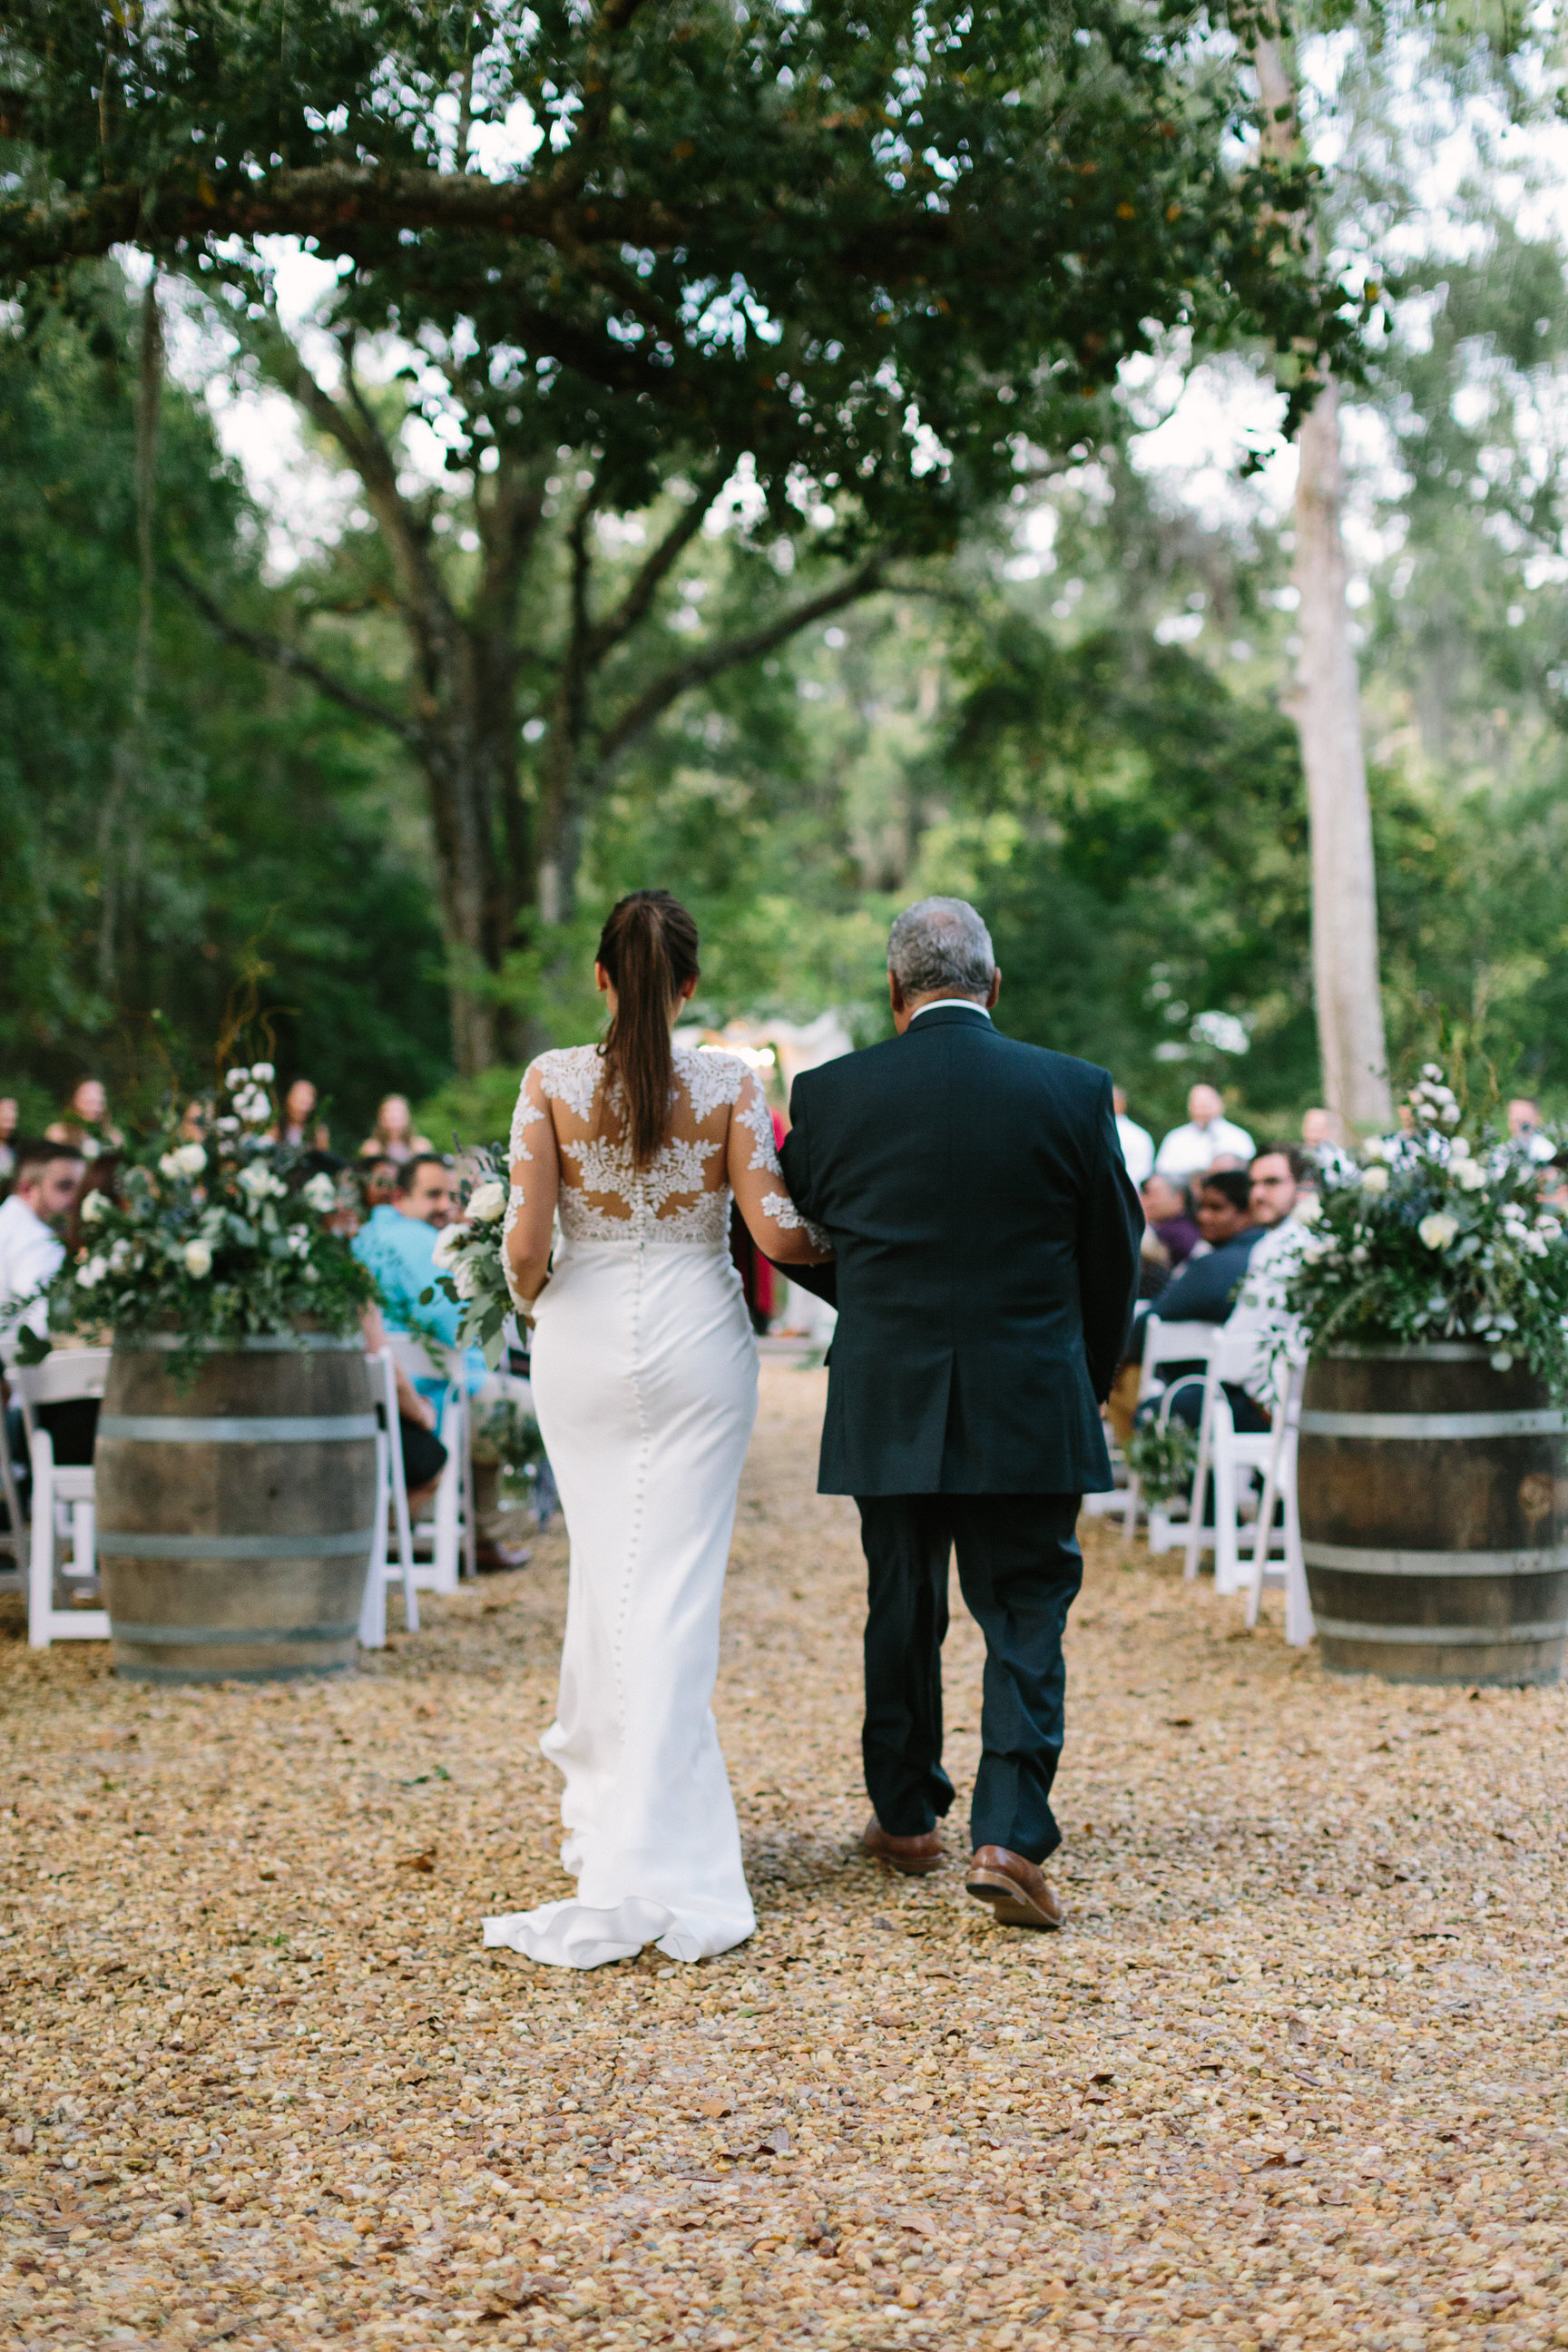 Wedding Ceremony Plant City Florida Photographer Benjamin Hewitt Photography